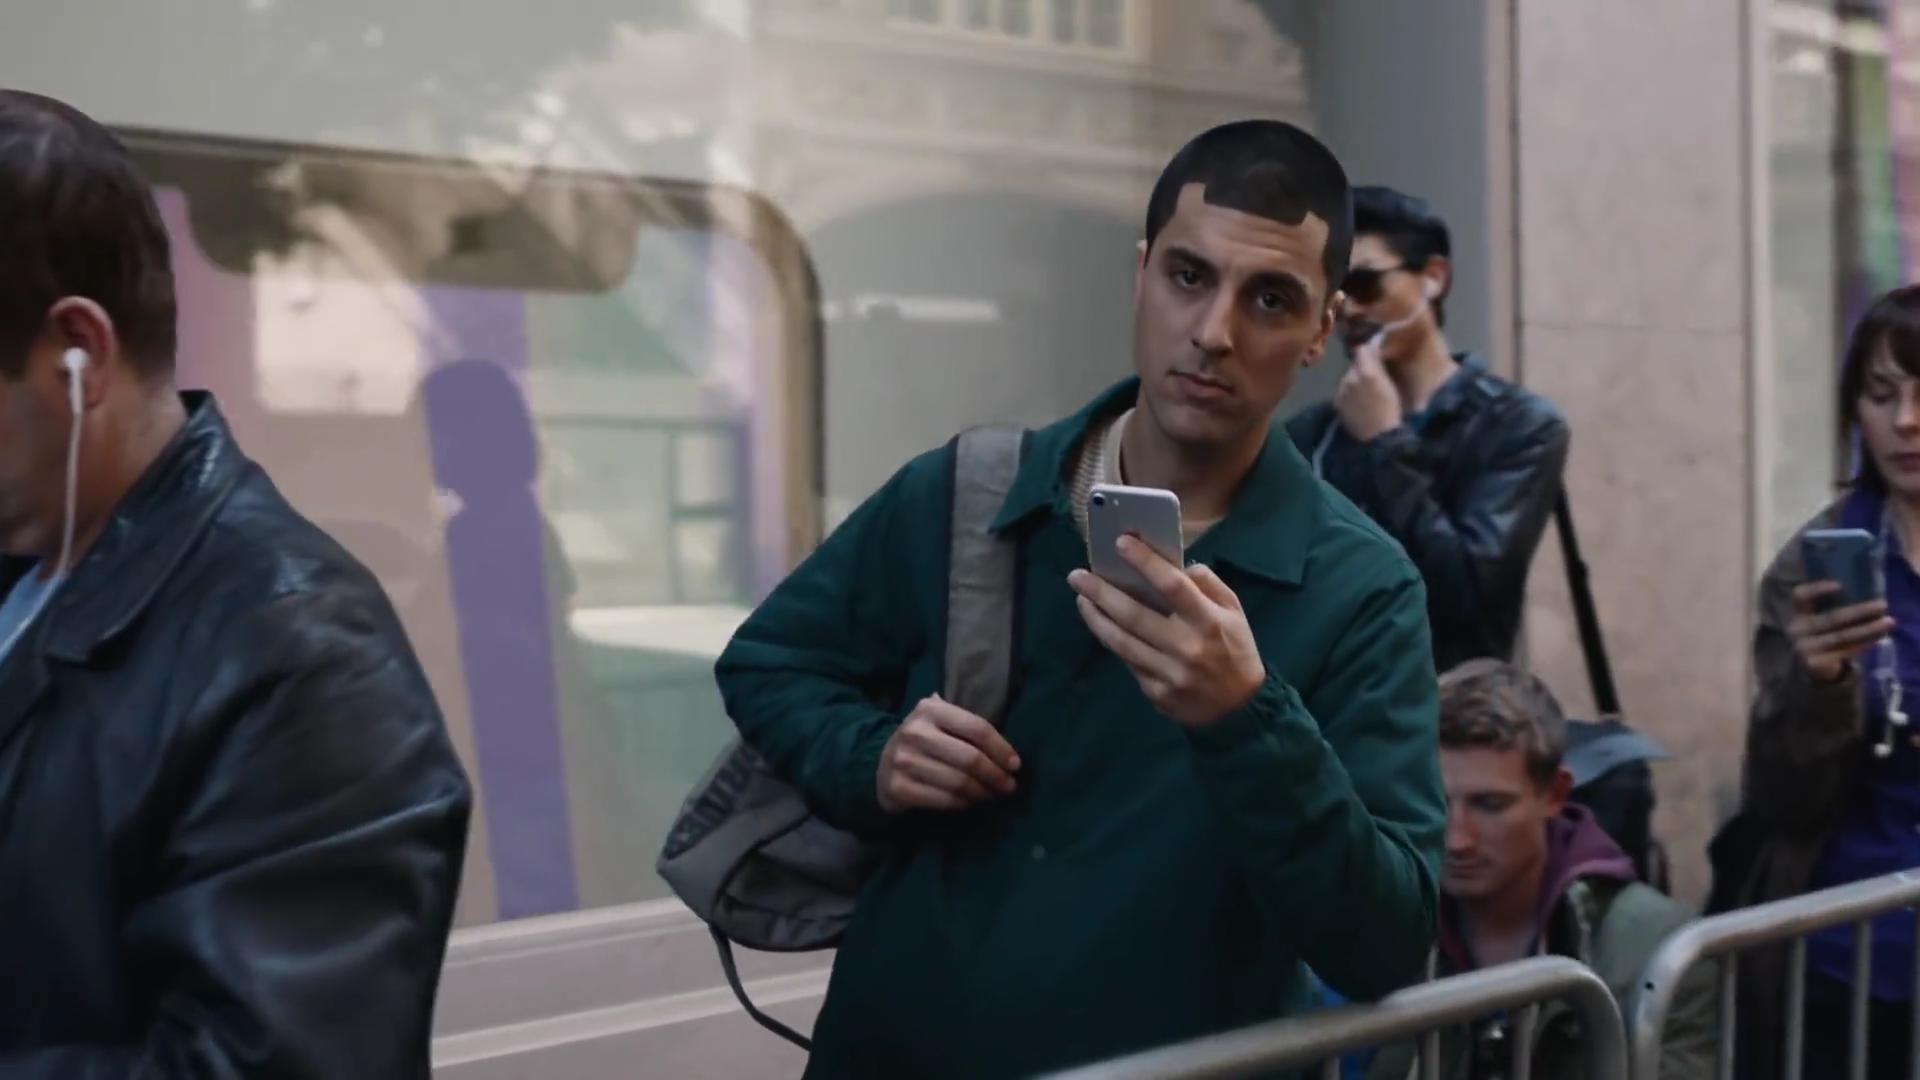 Samsung's latest ad makes direct jabs at multiple generations of the iPhone, and it's pretty funny